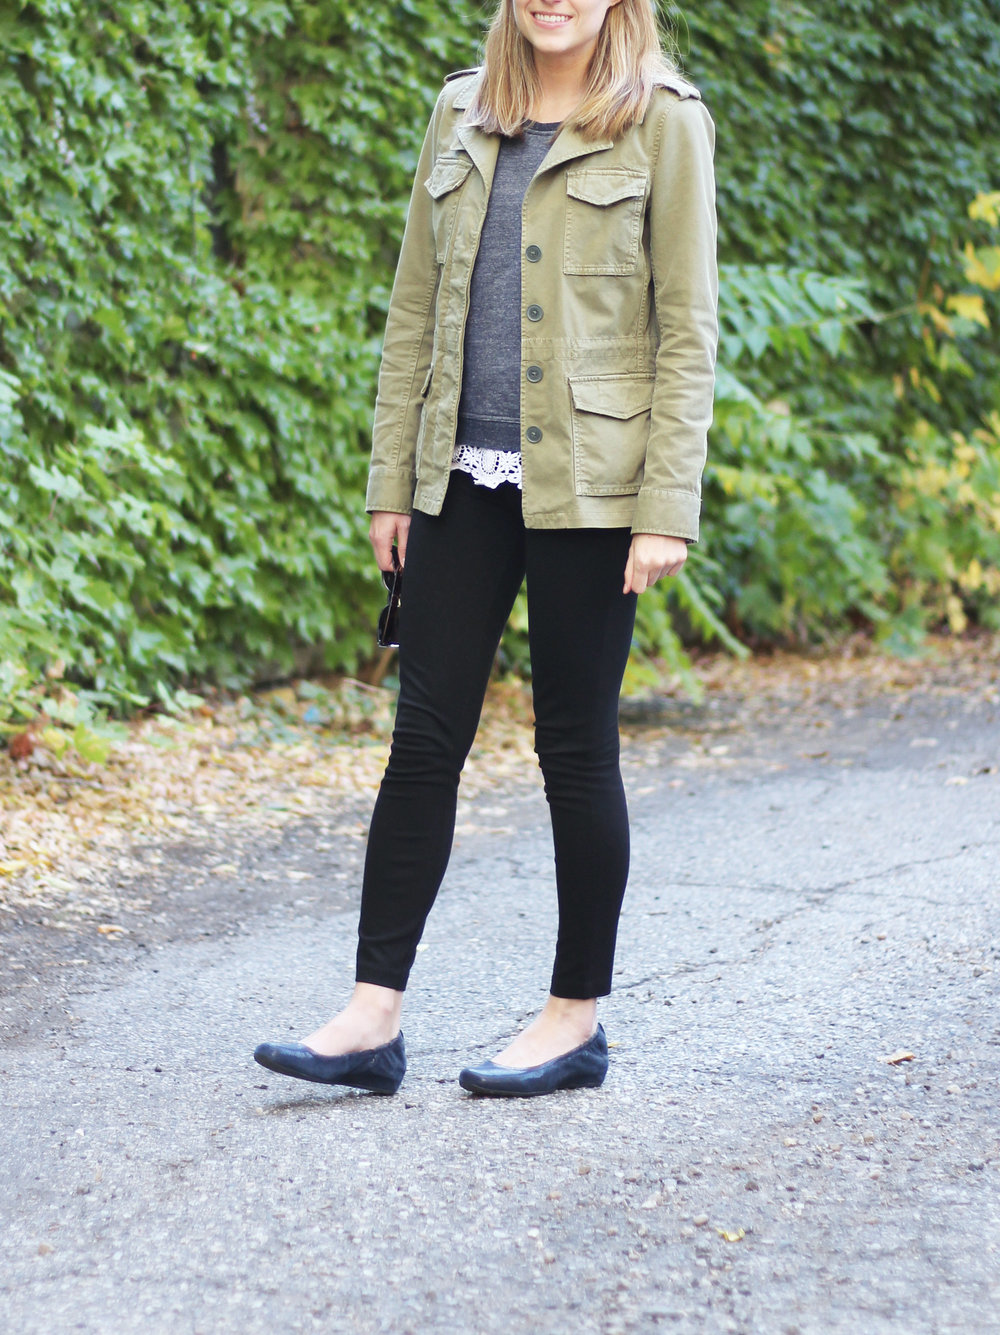 Green utility jacket outfit with navy sweater, lace top, black pants, navy flats — Cotton Cashmere Cat Hair